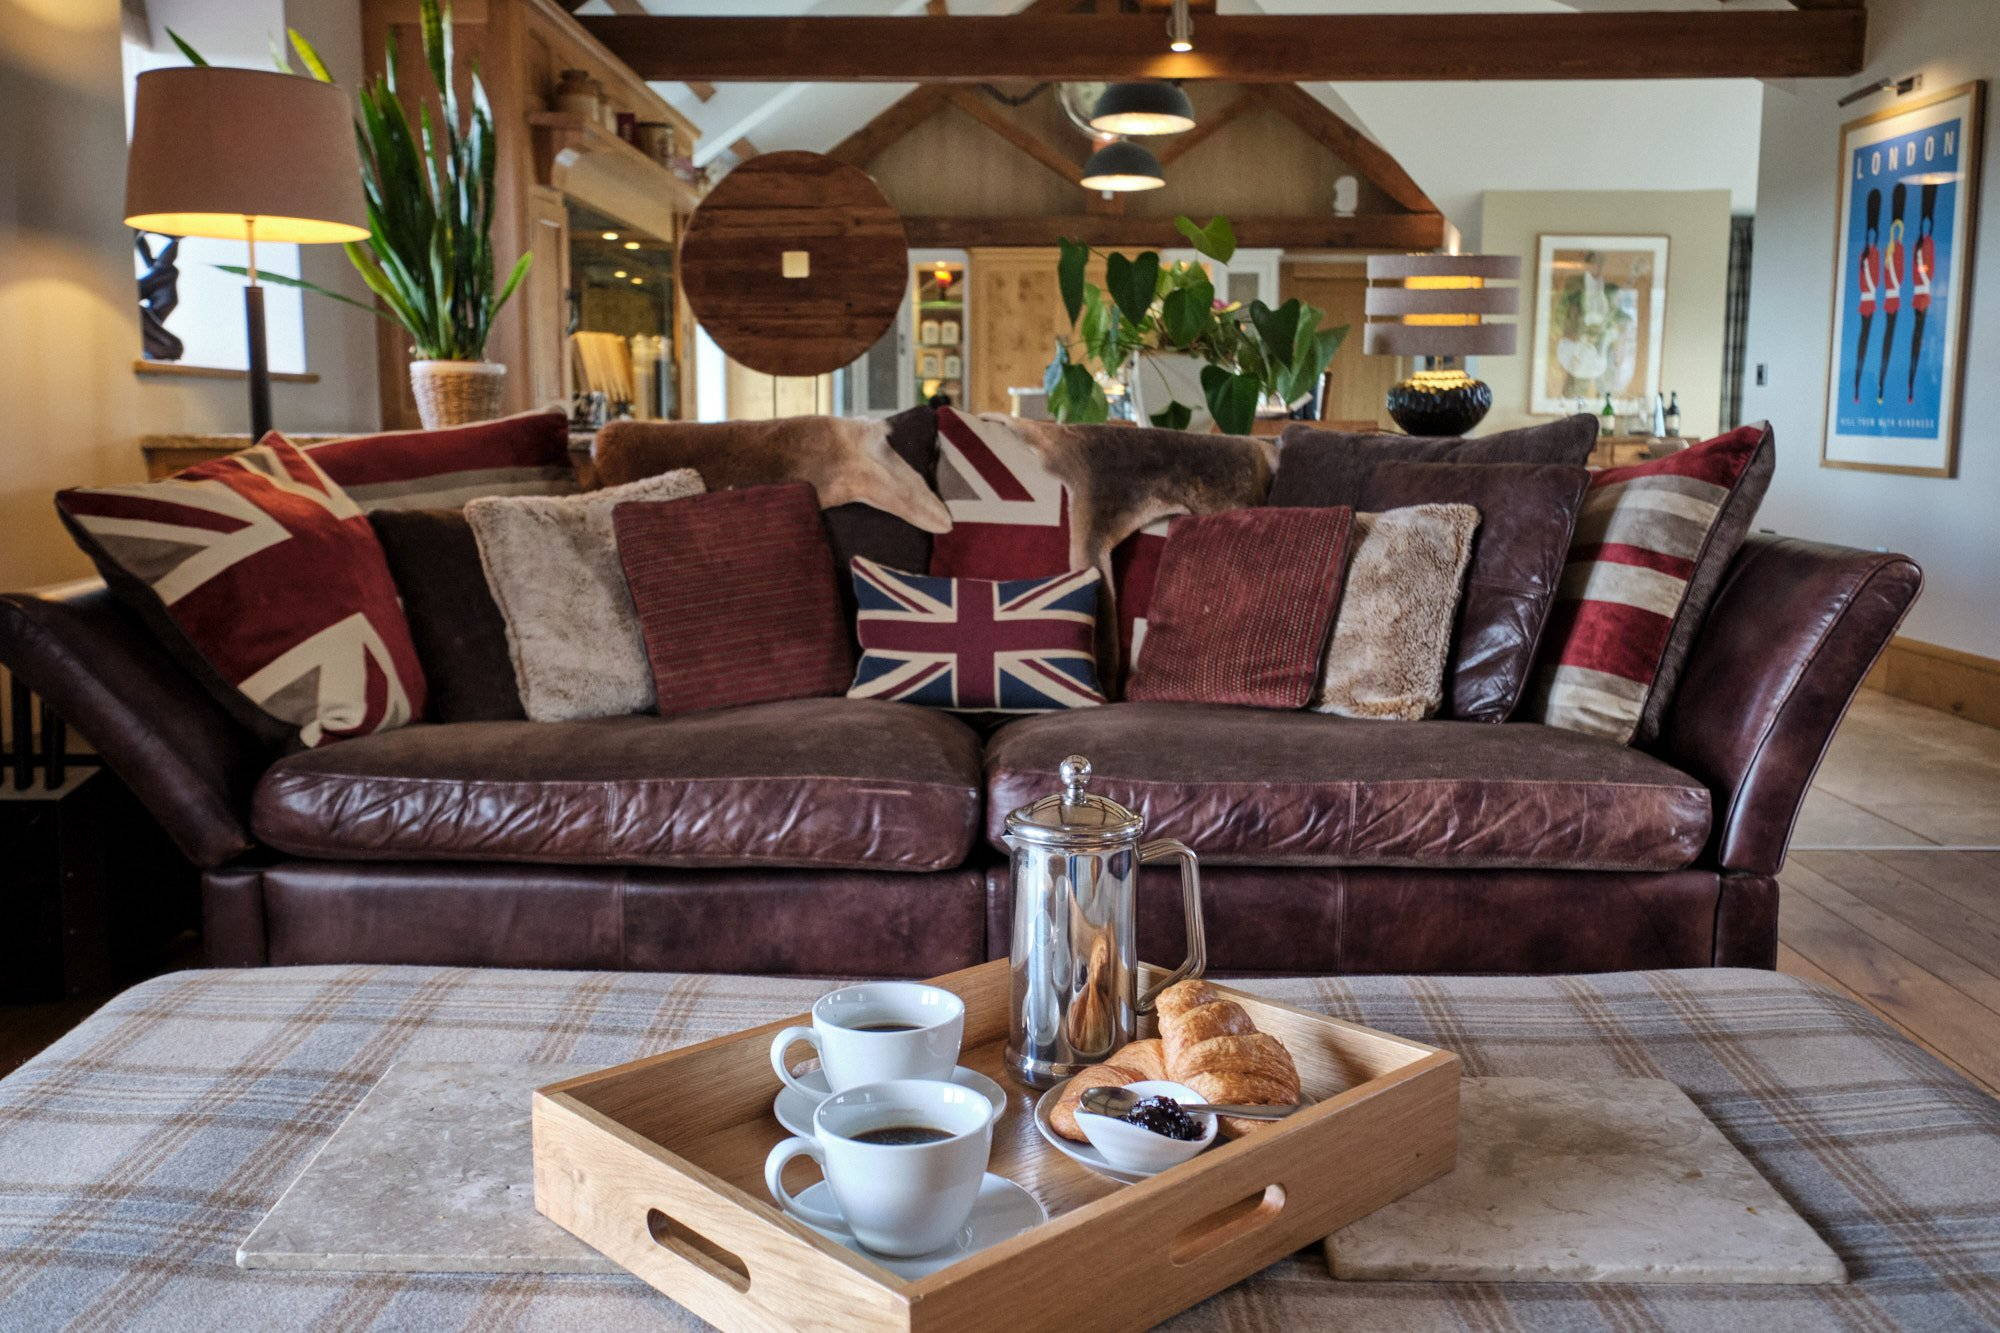 A truly British home